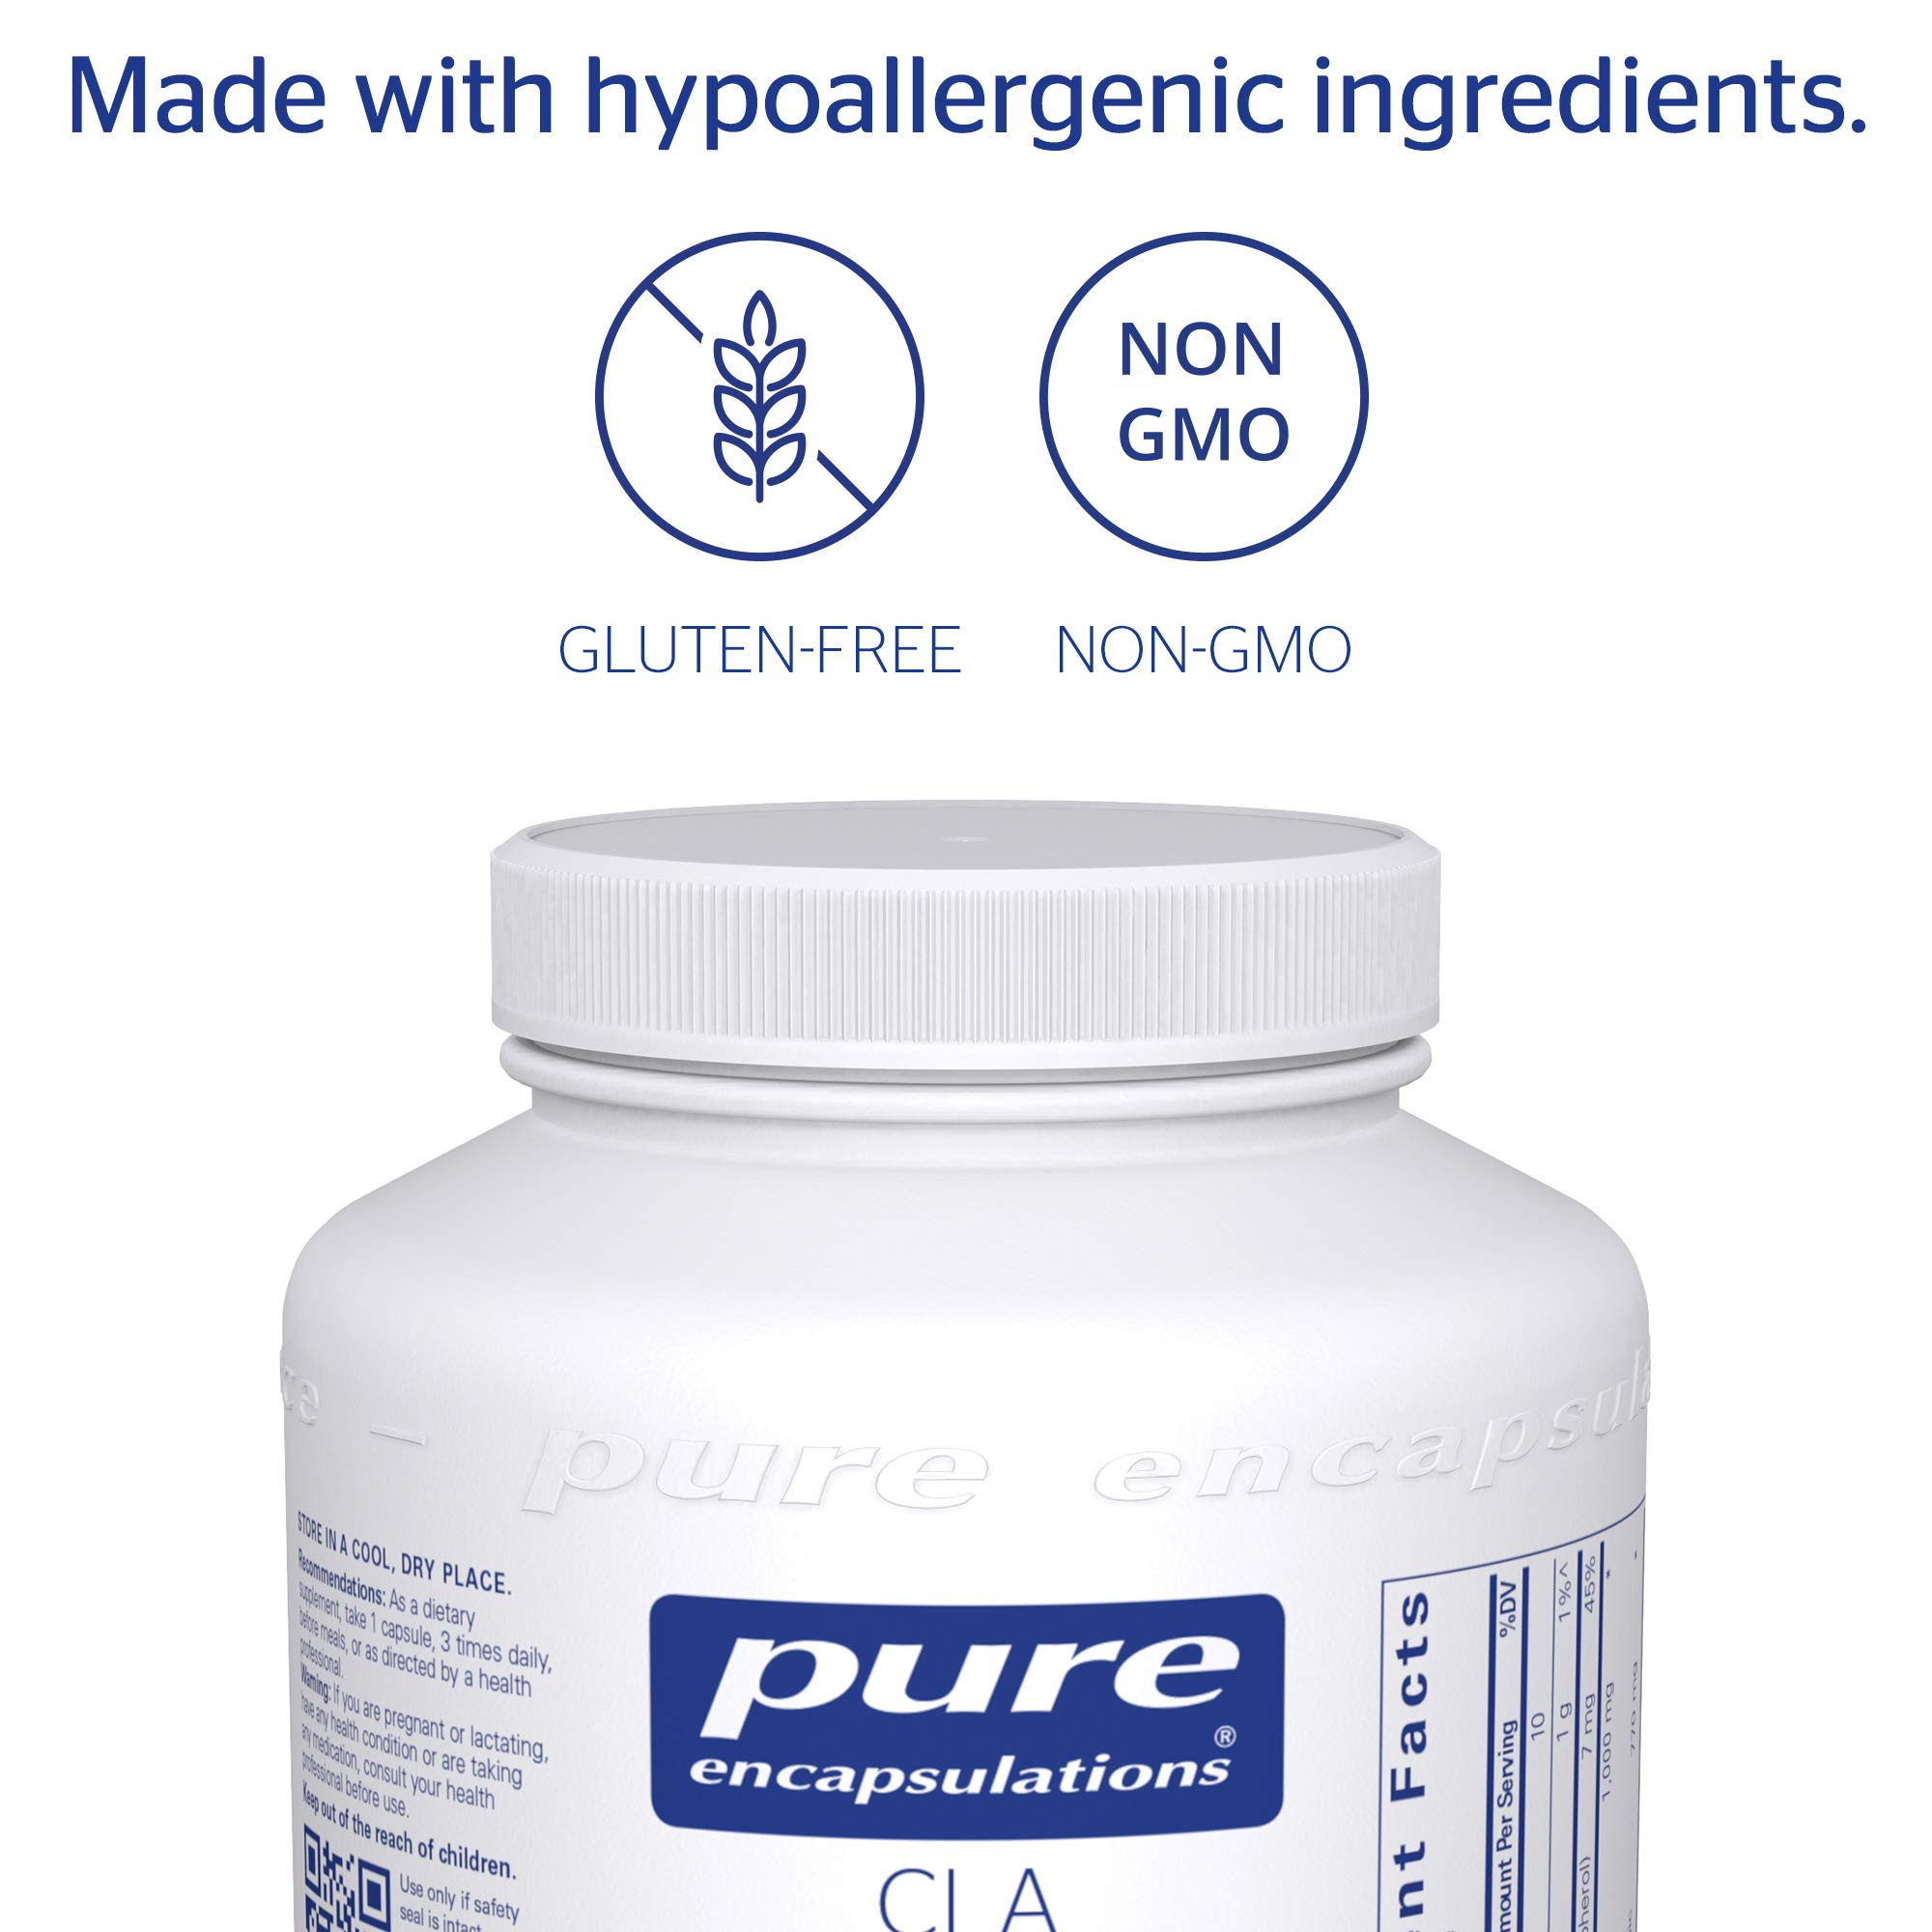 Pure Encapsulations - CLA (Conjugated Linoleic Acid) 1,000 mg - Promotes Healthy Body Composition with Healthy Diet and Exercise* - 180 Softgel Capsules by Pure Encapsulations (Image #4)